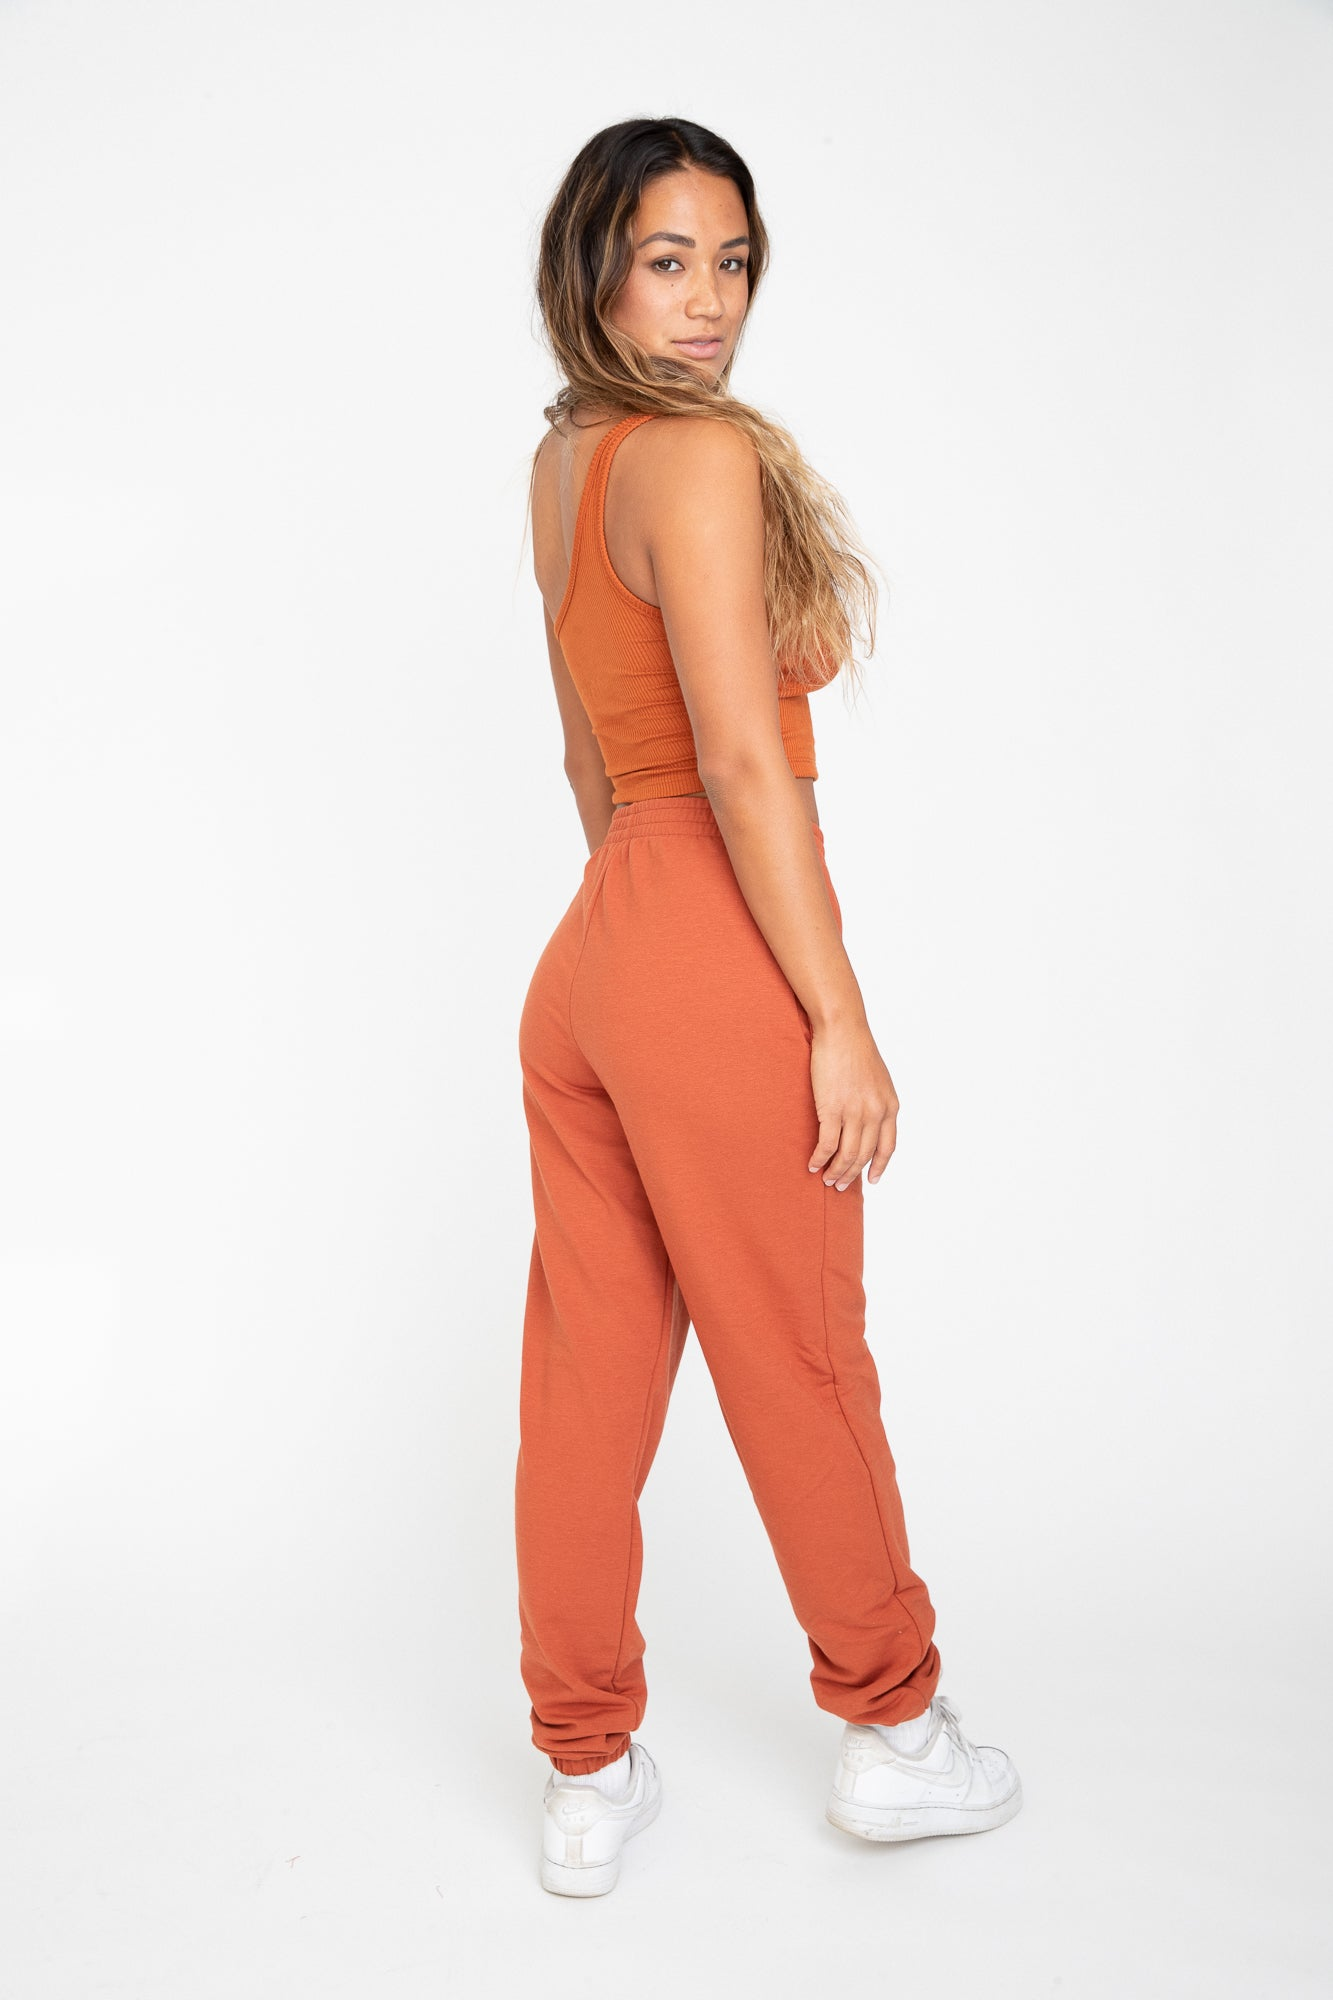 Jagger Sweatpants - Cinnamon